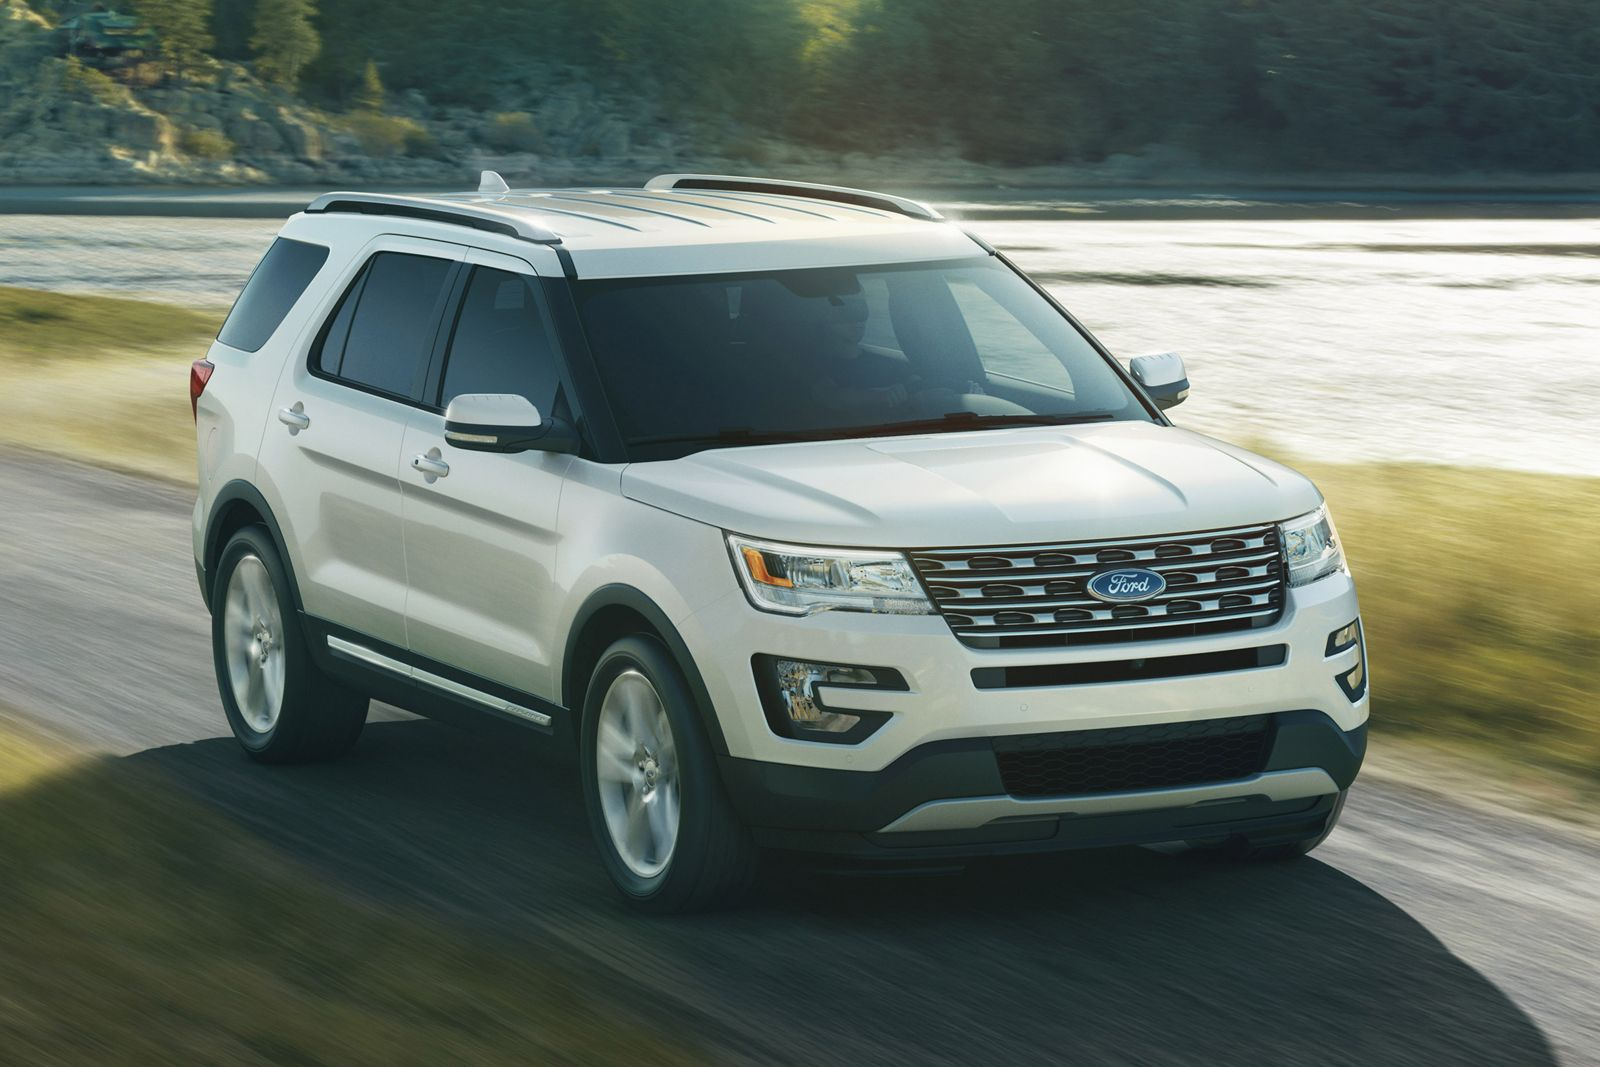 2016 Ford Explorer Gets A New Face 2 3l Ecoboost Engine And Platinum Grade Ford Explorer Best Suv Ford Explorer Limited